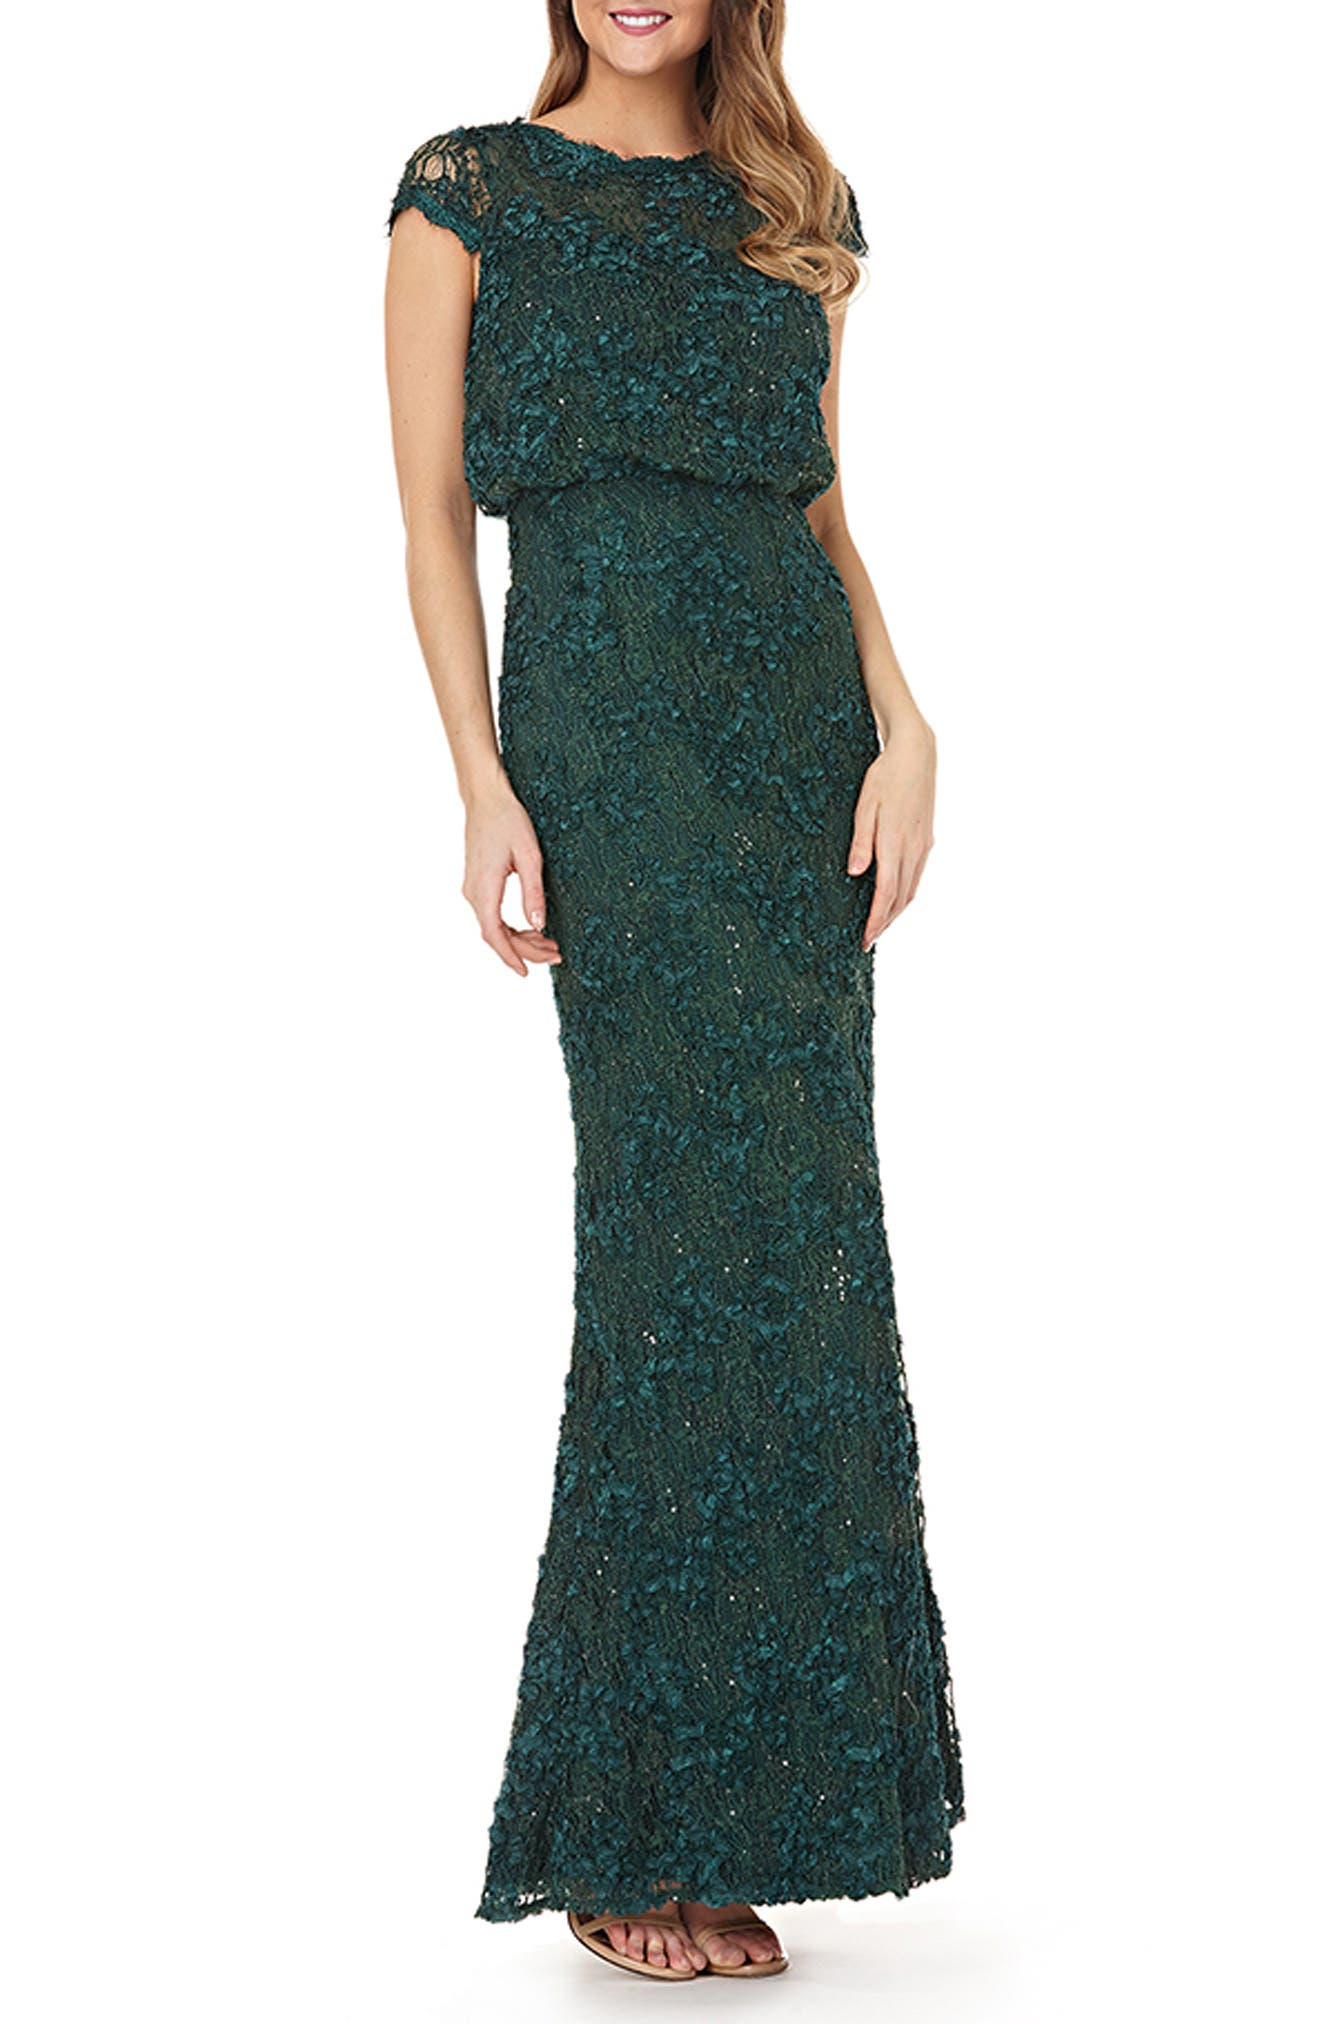 JS COLLECTIONS, Sequin Lace Blouson Gown, Main thumbnail 1, color, GREEN